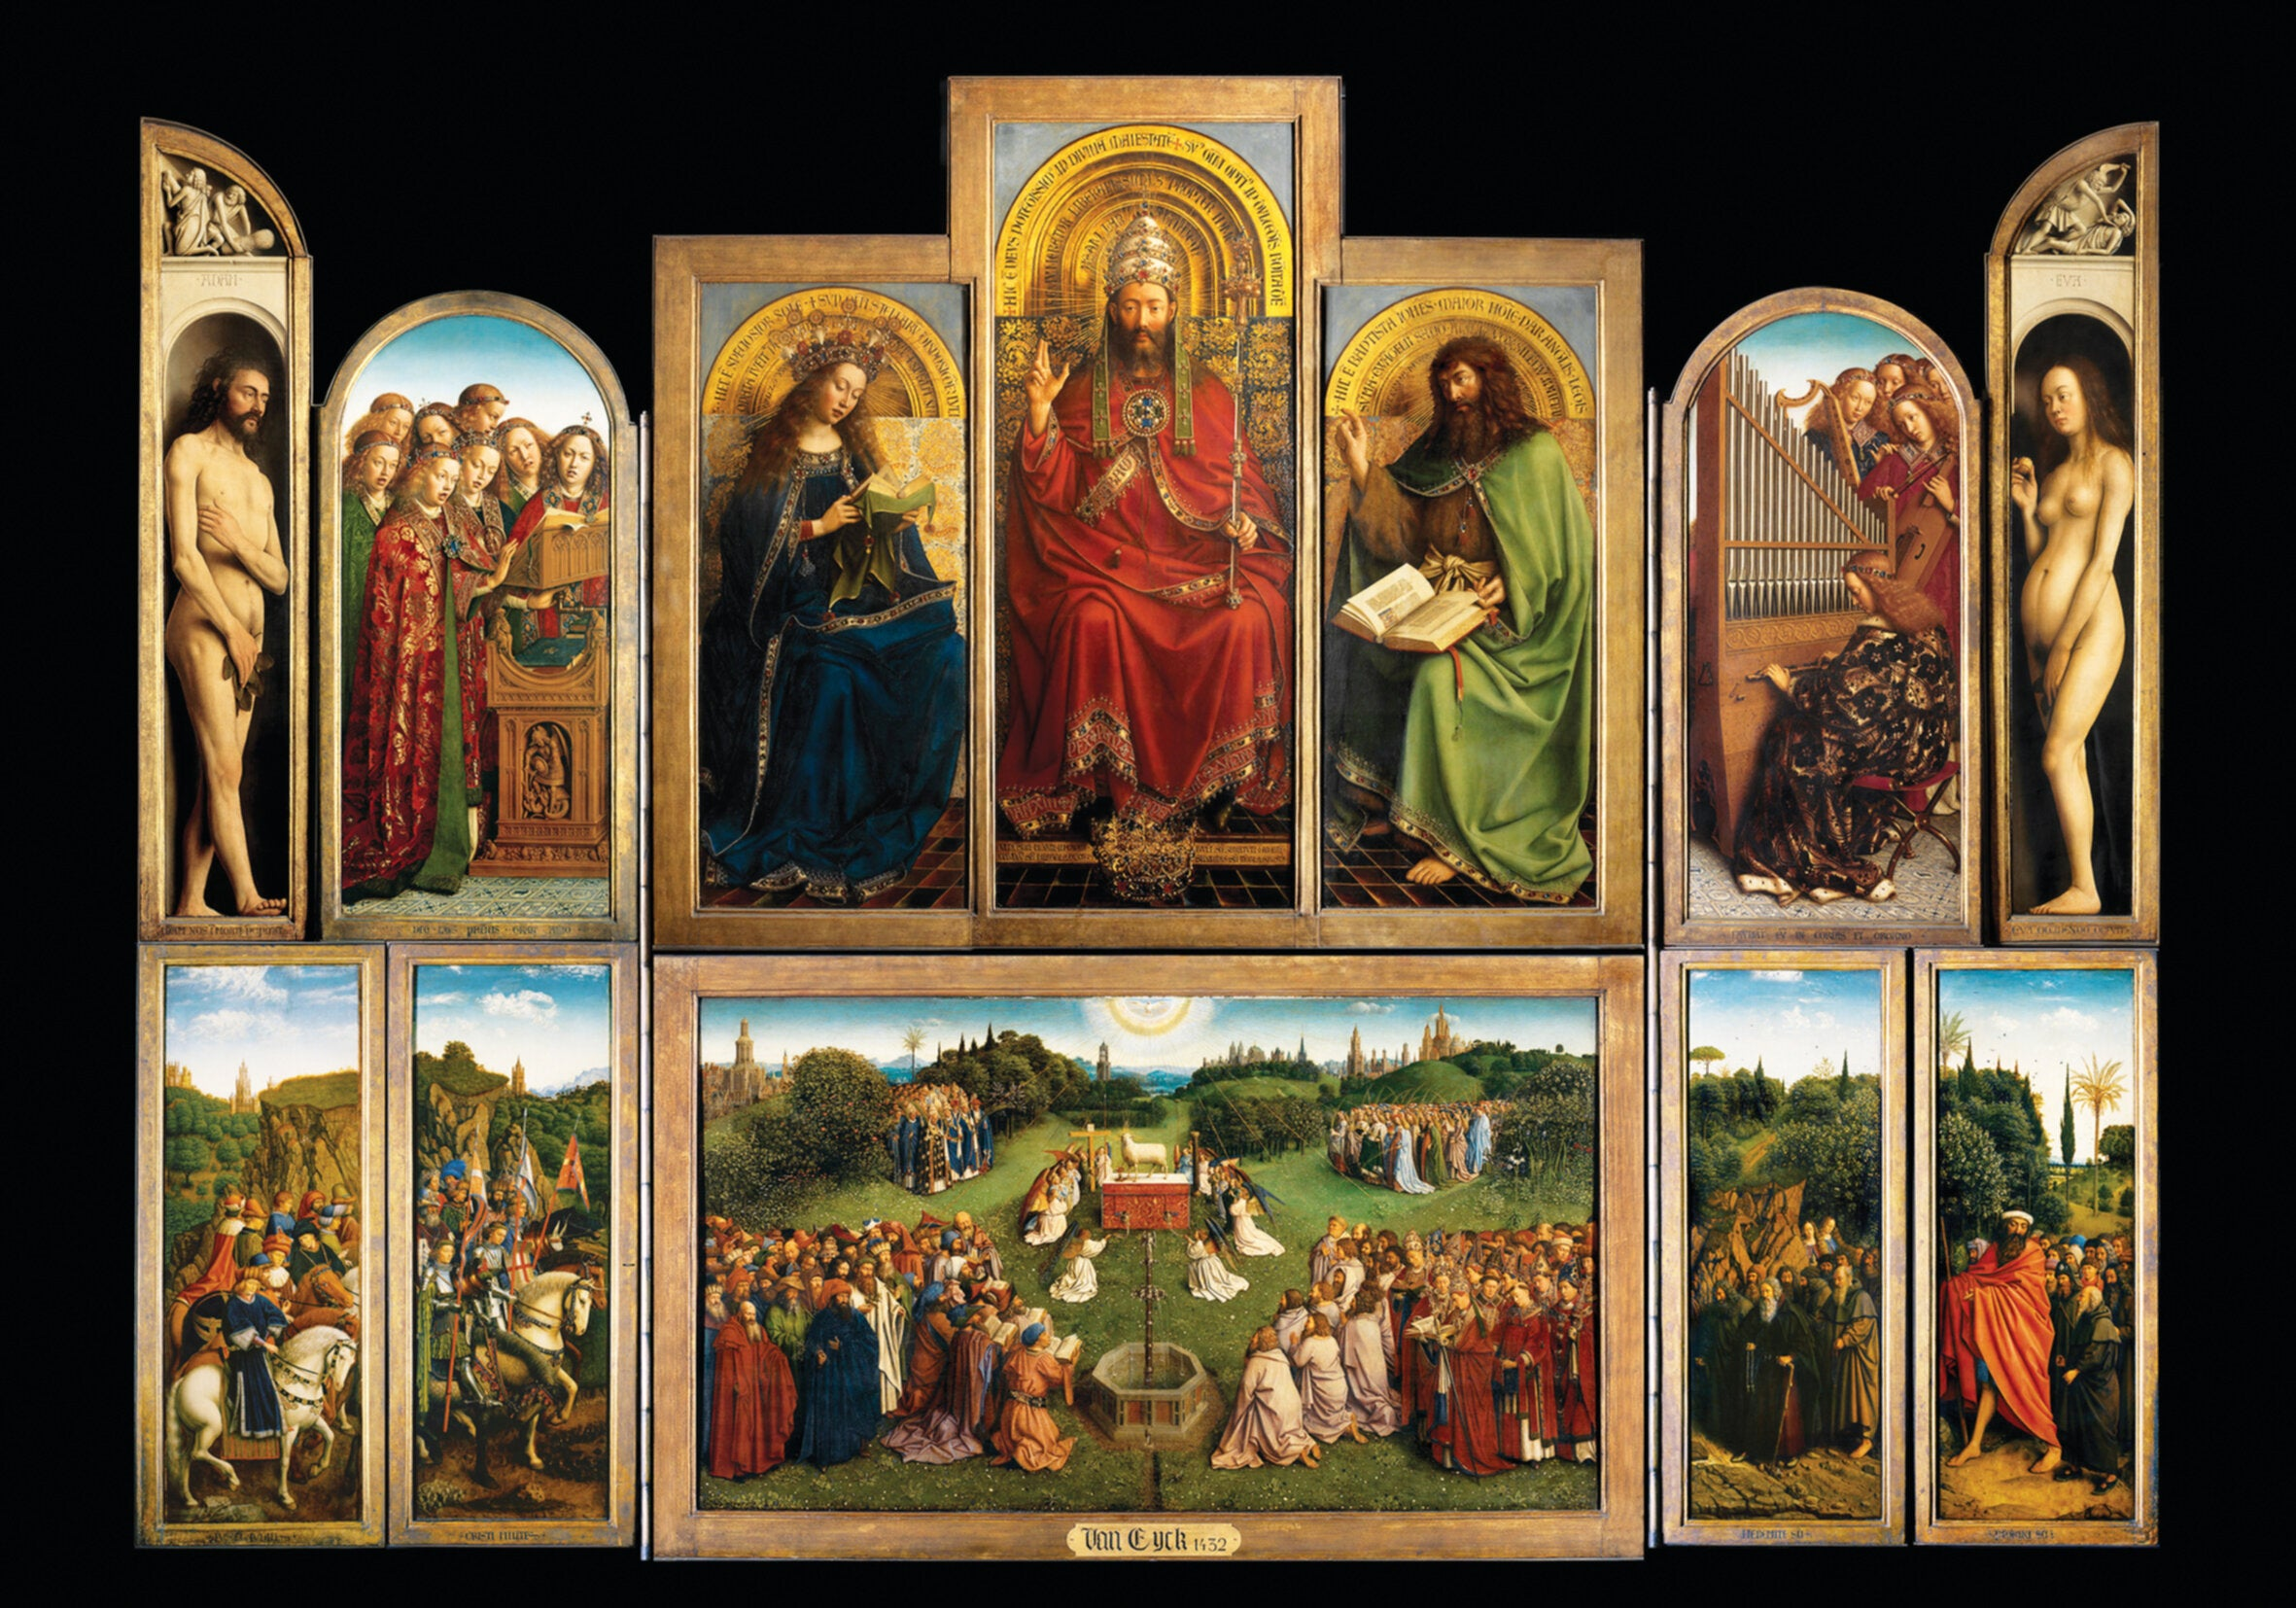 Van Eyck's Ghent Altarpiece and the many thefts of a masterpiece